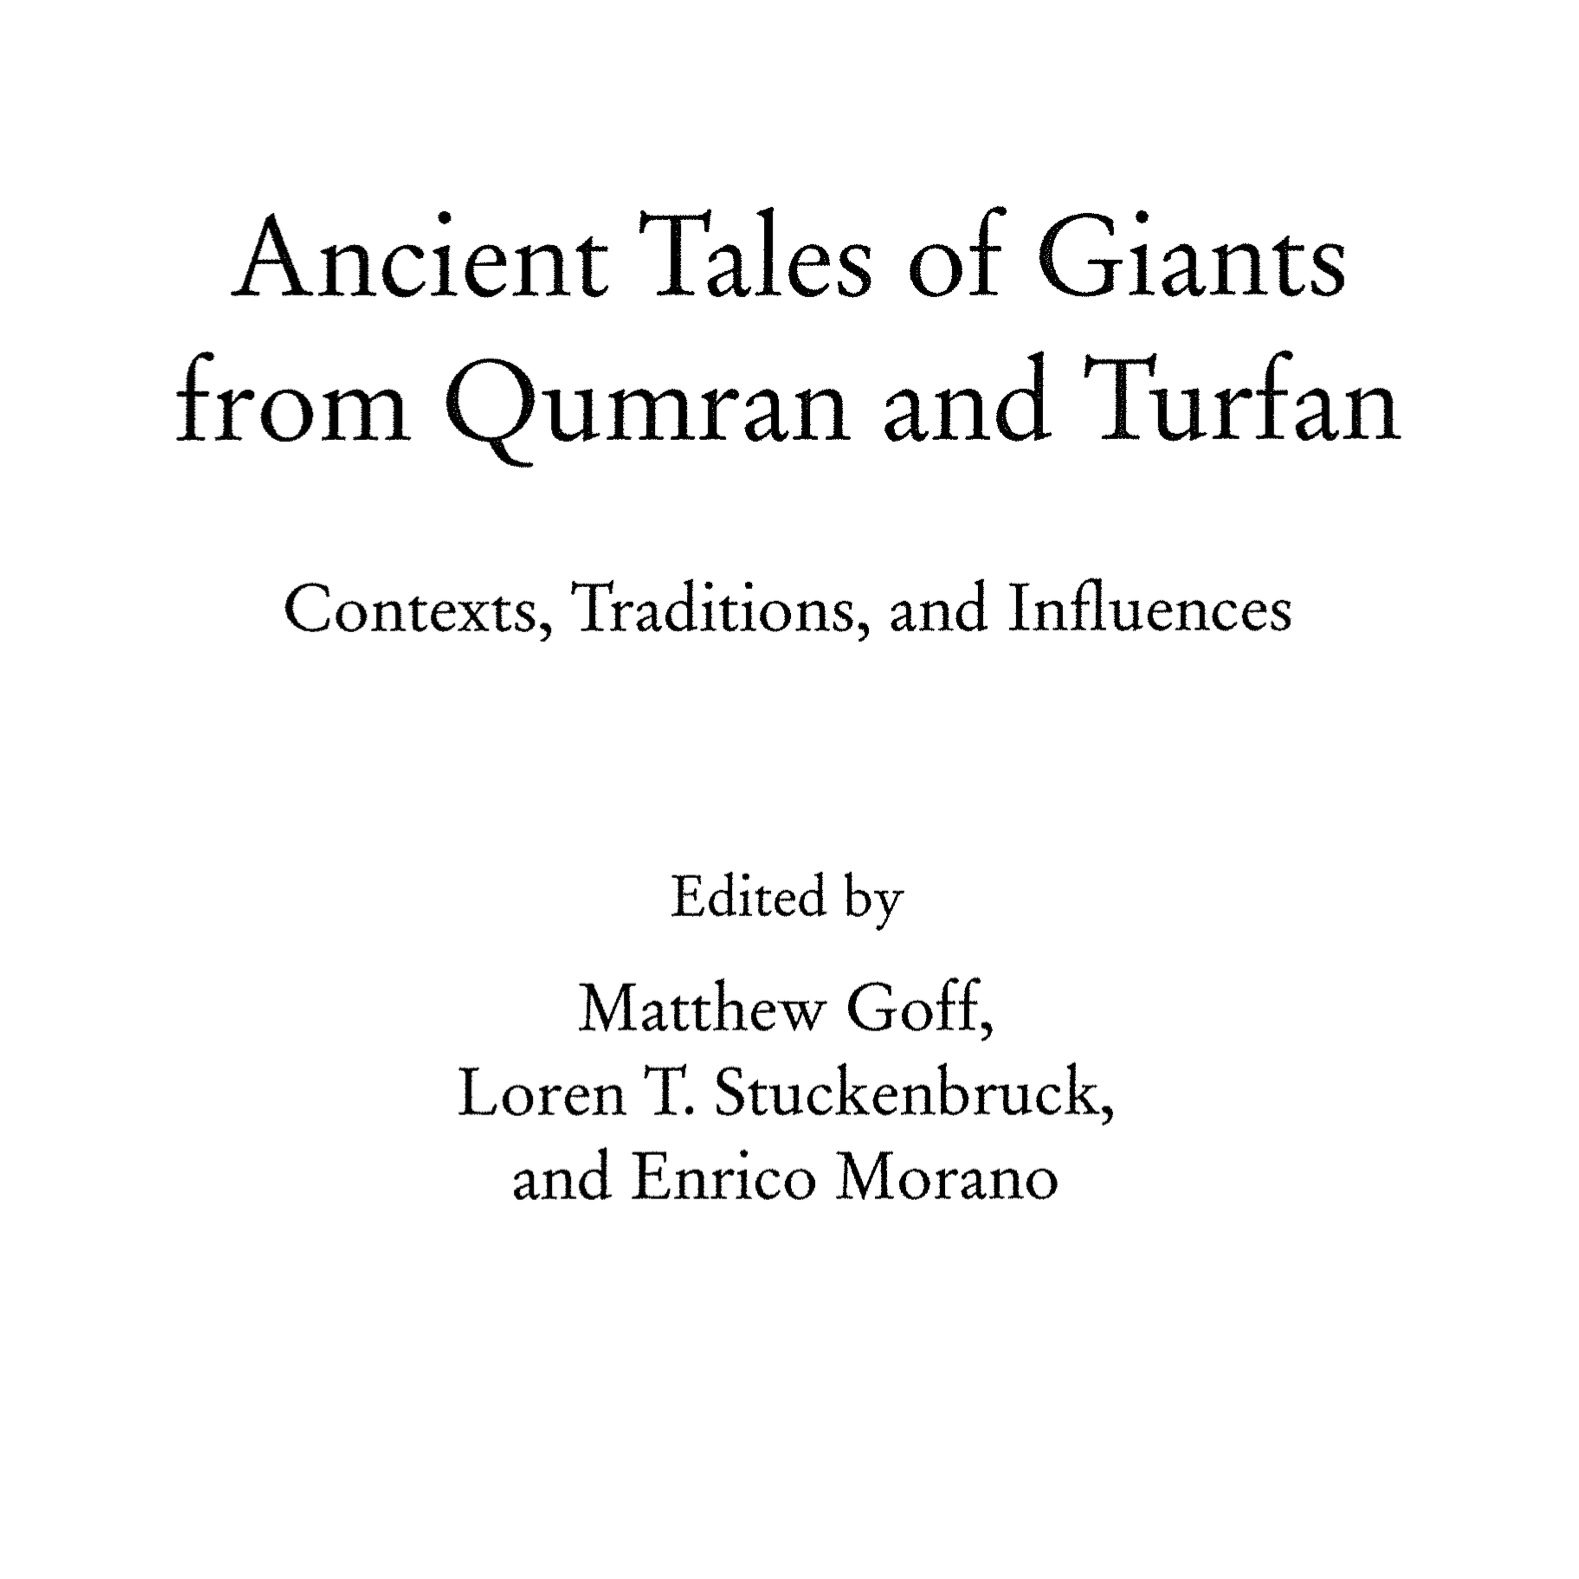 """The Giant in a Thousand Years: Tracing Narratives of Gigantism in the Hebrew Bible and Beyond,""  in  Ancient Tales of Giants from Qumran and Turfan: Contexts, Traditions, and Influences,  ed. Matthew Goff, Loren Stuckenbruck, and Enrico Morano (Tübingen: Mohr Siebeck, 2016), pp. 13–32."